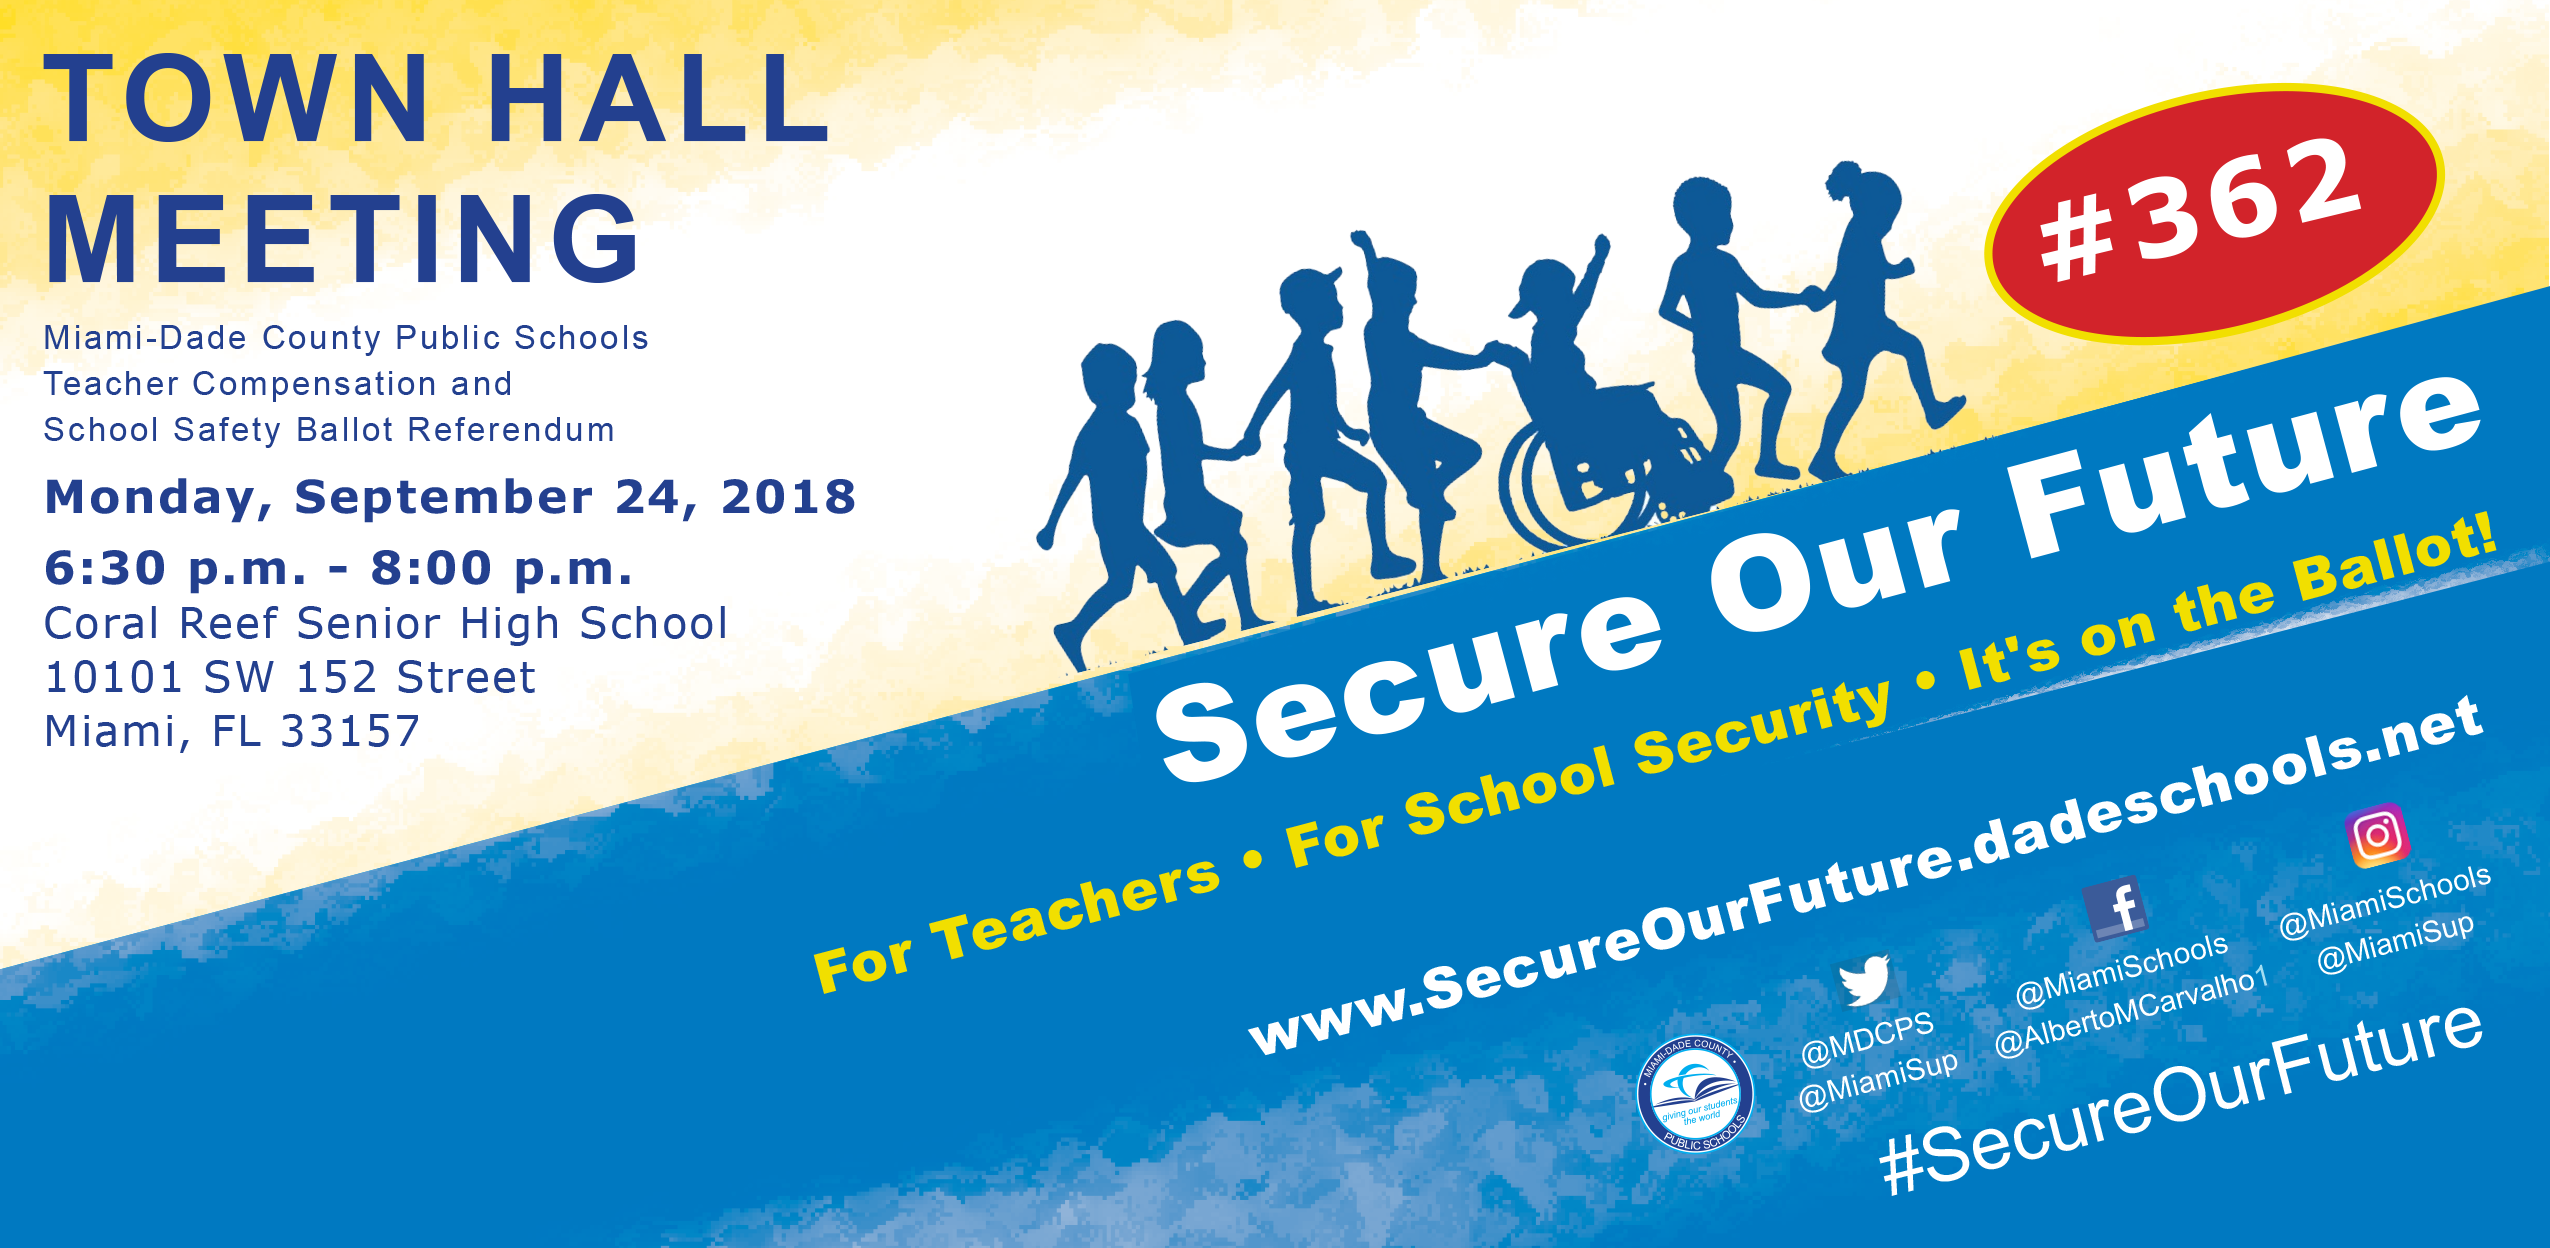 Town Hall Meeting - Secure Our Future @ Coral Reef Senior High School